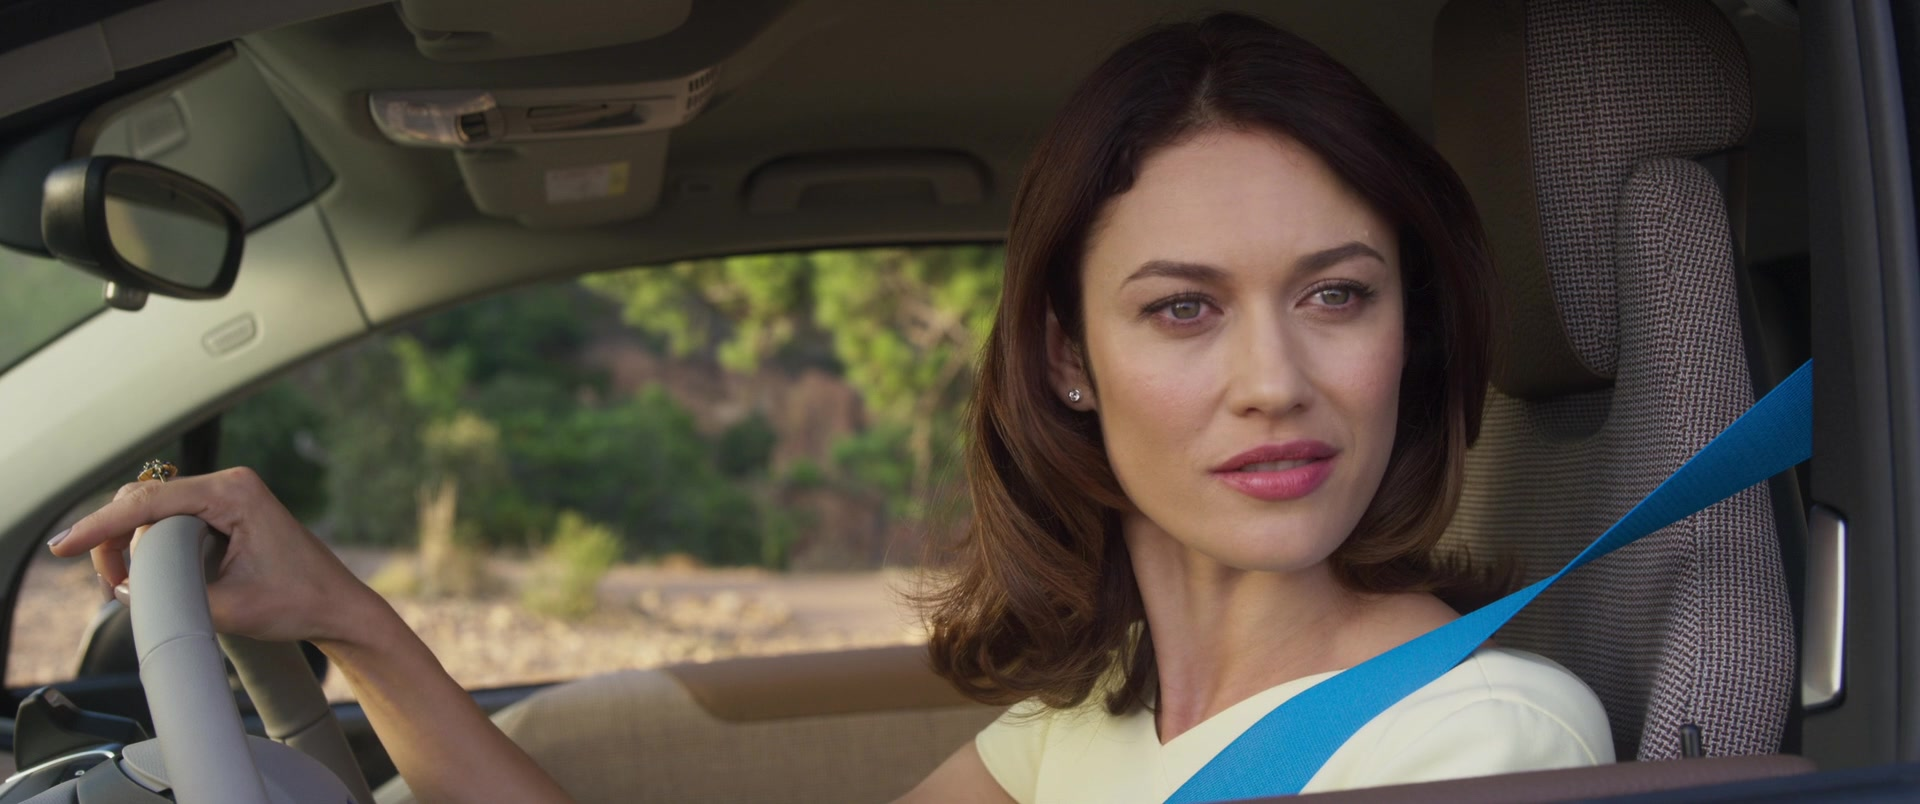 Bmw I3 S I01 Electric Car Driven By Olga Kurylenko In